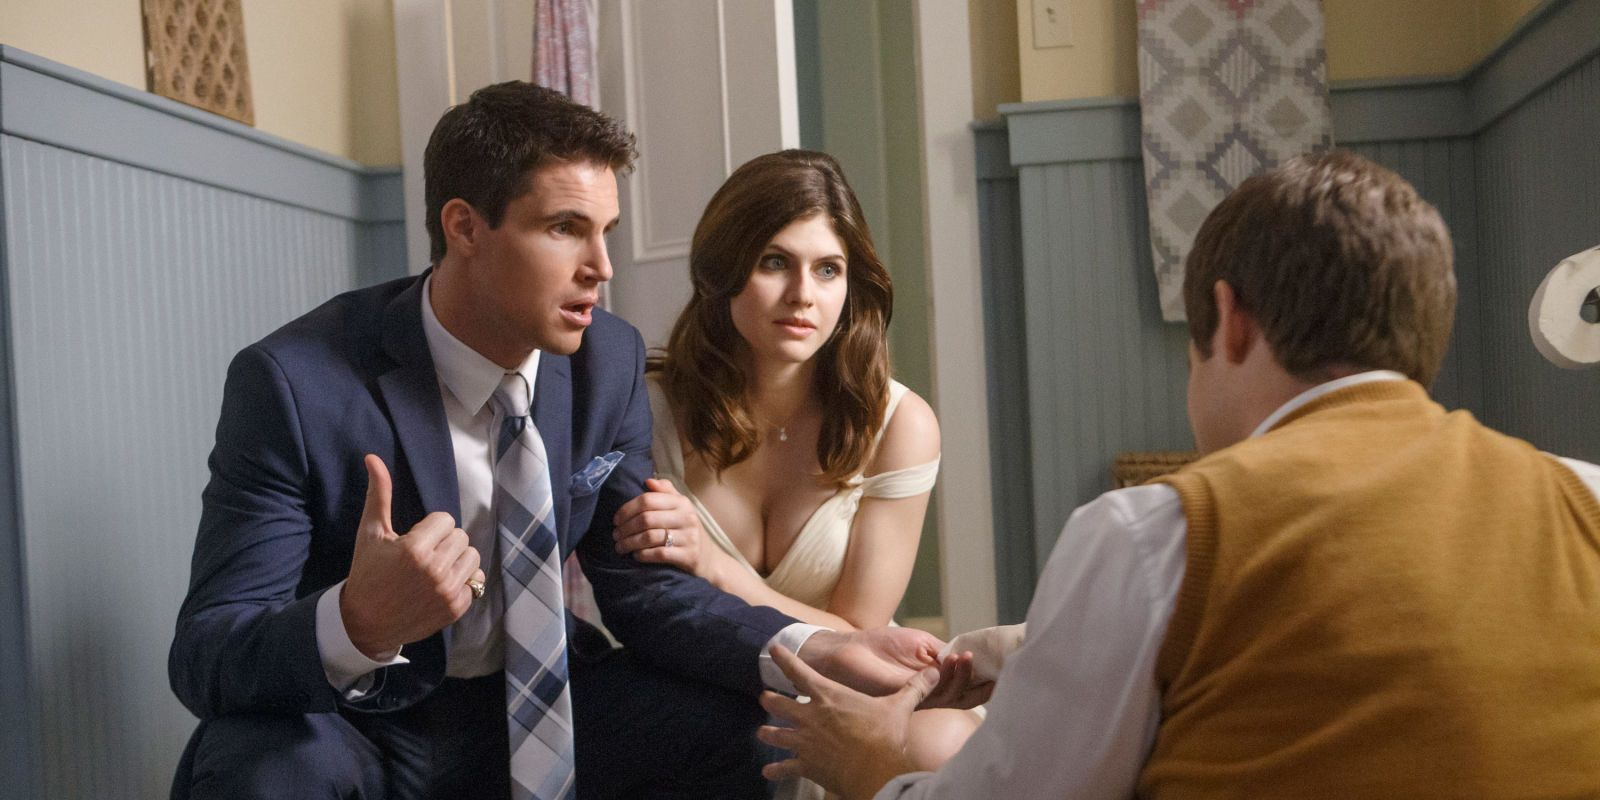 Alexandra Daddario And Robbie Amell In When We First Met Comedy